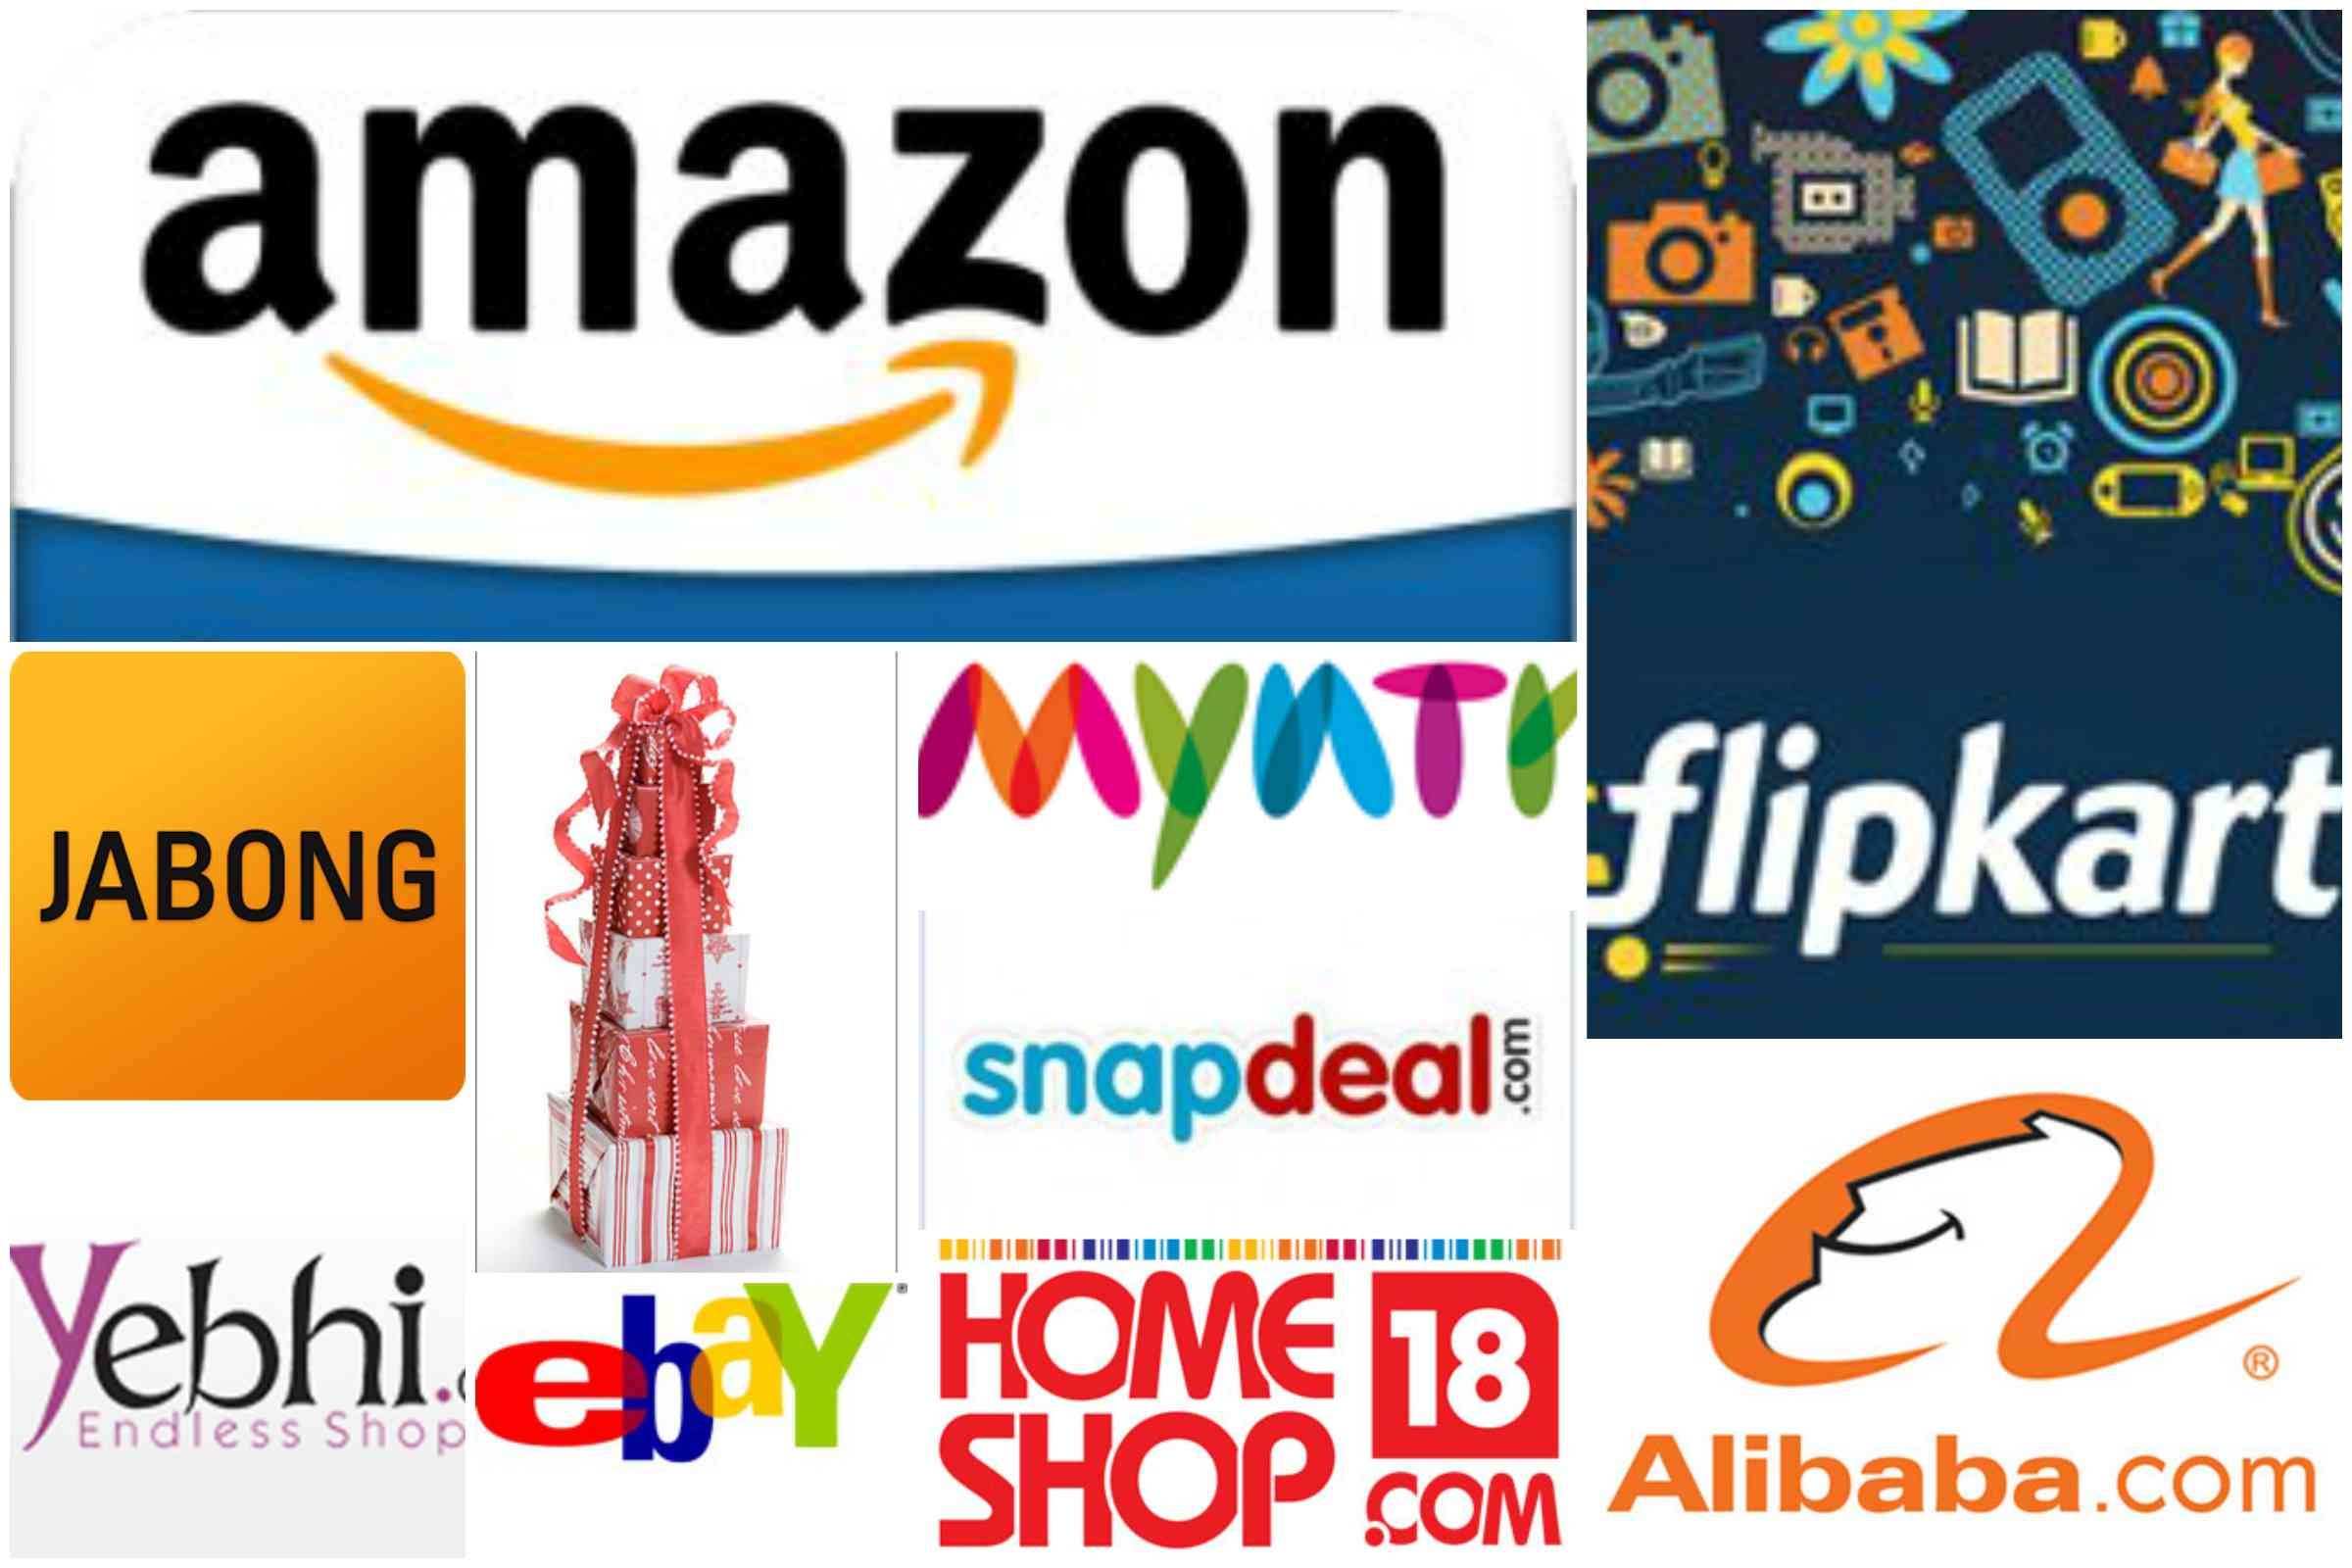 The best 50 online shopping sites 5 October We value our editorial independence, basing our comparison results, content and reviews on objective analysis without bias. But we may receive compensation when you click links on our site. Learn more about how we make money from our partners.